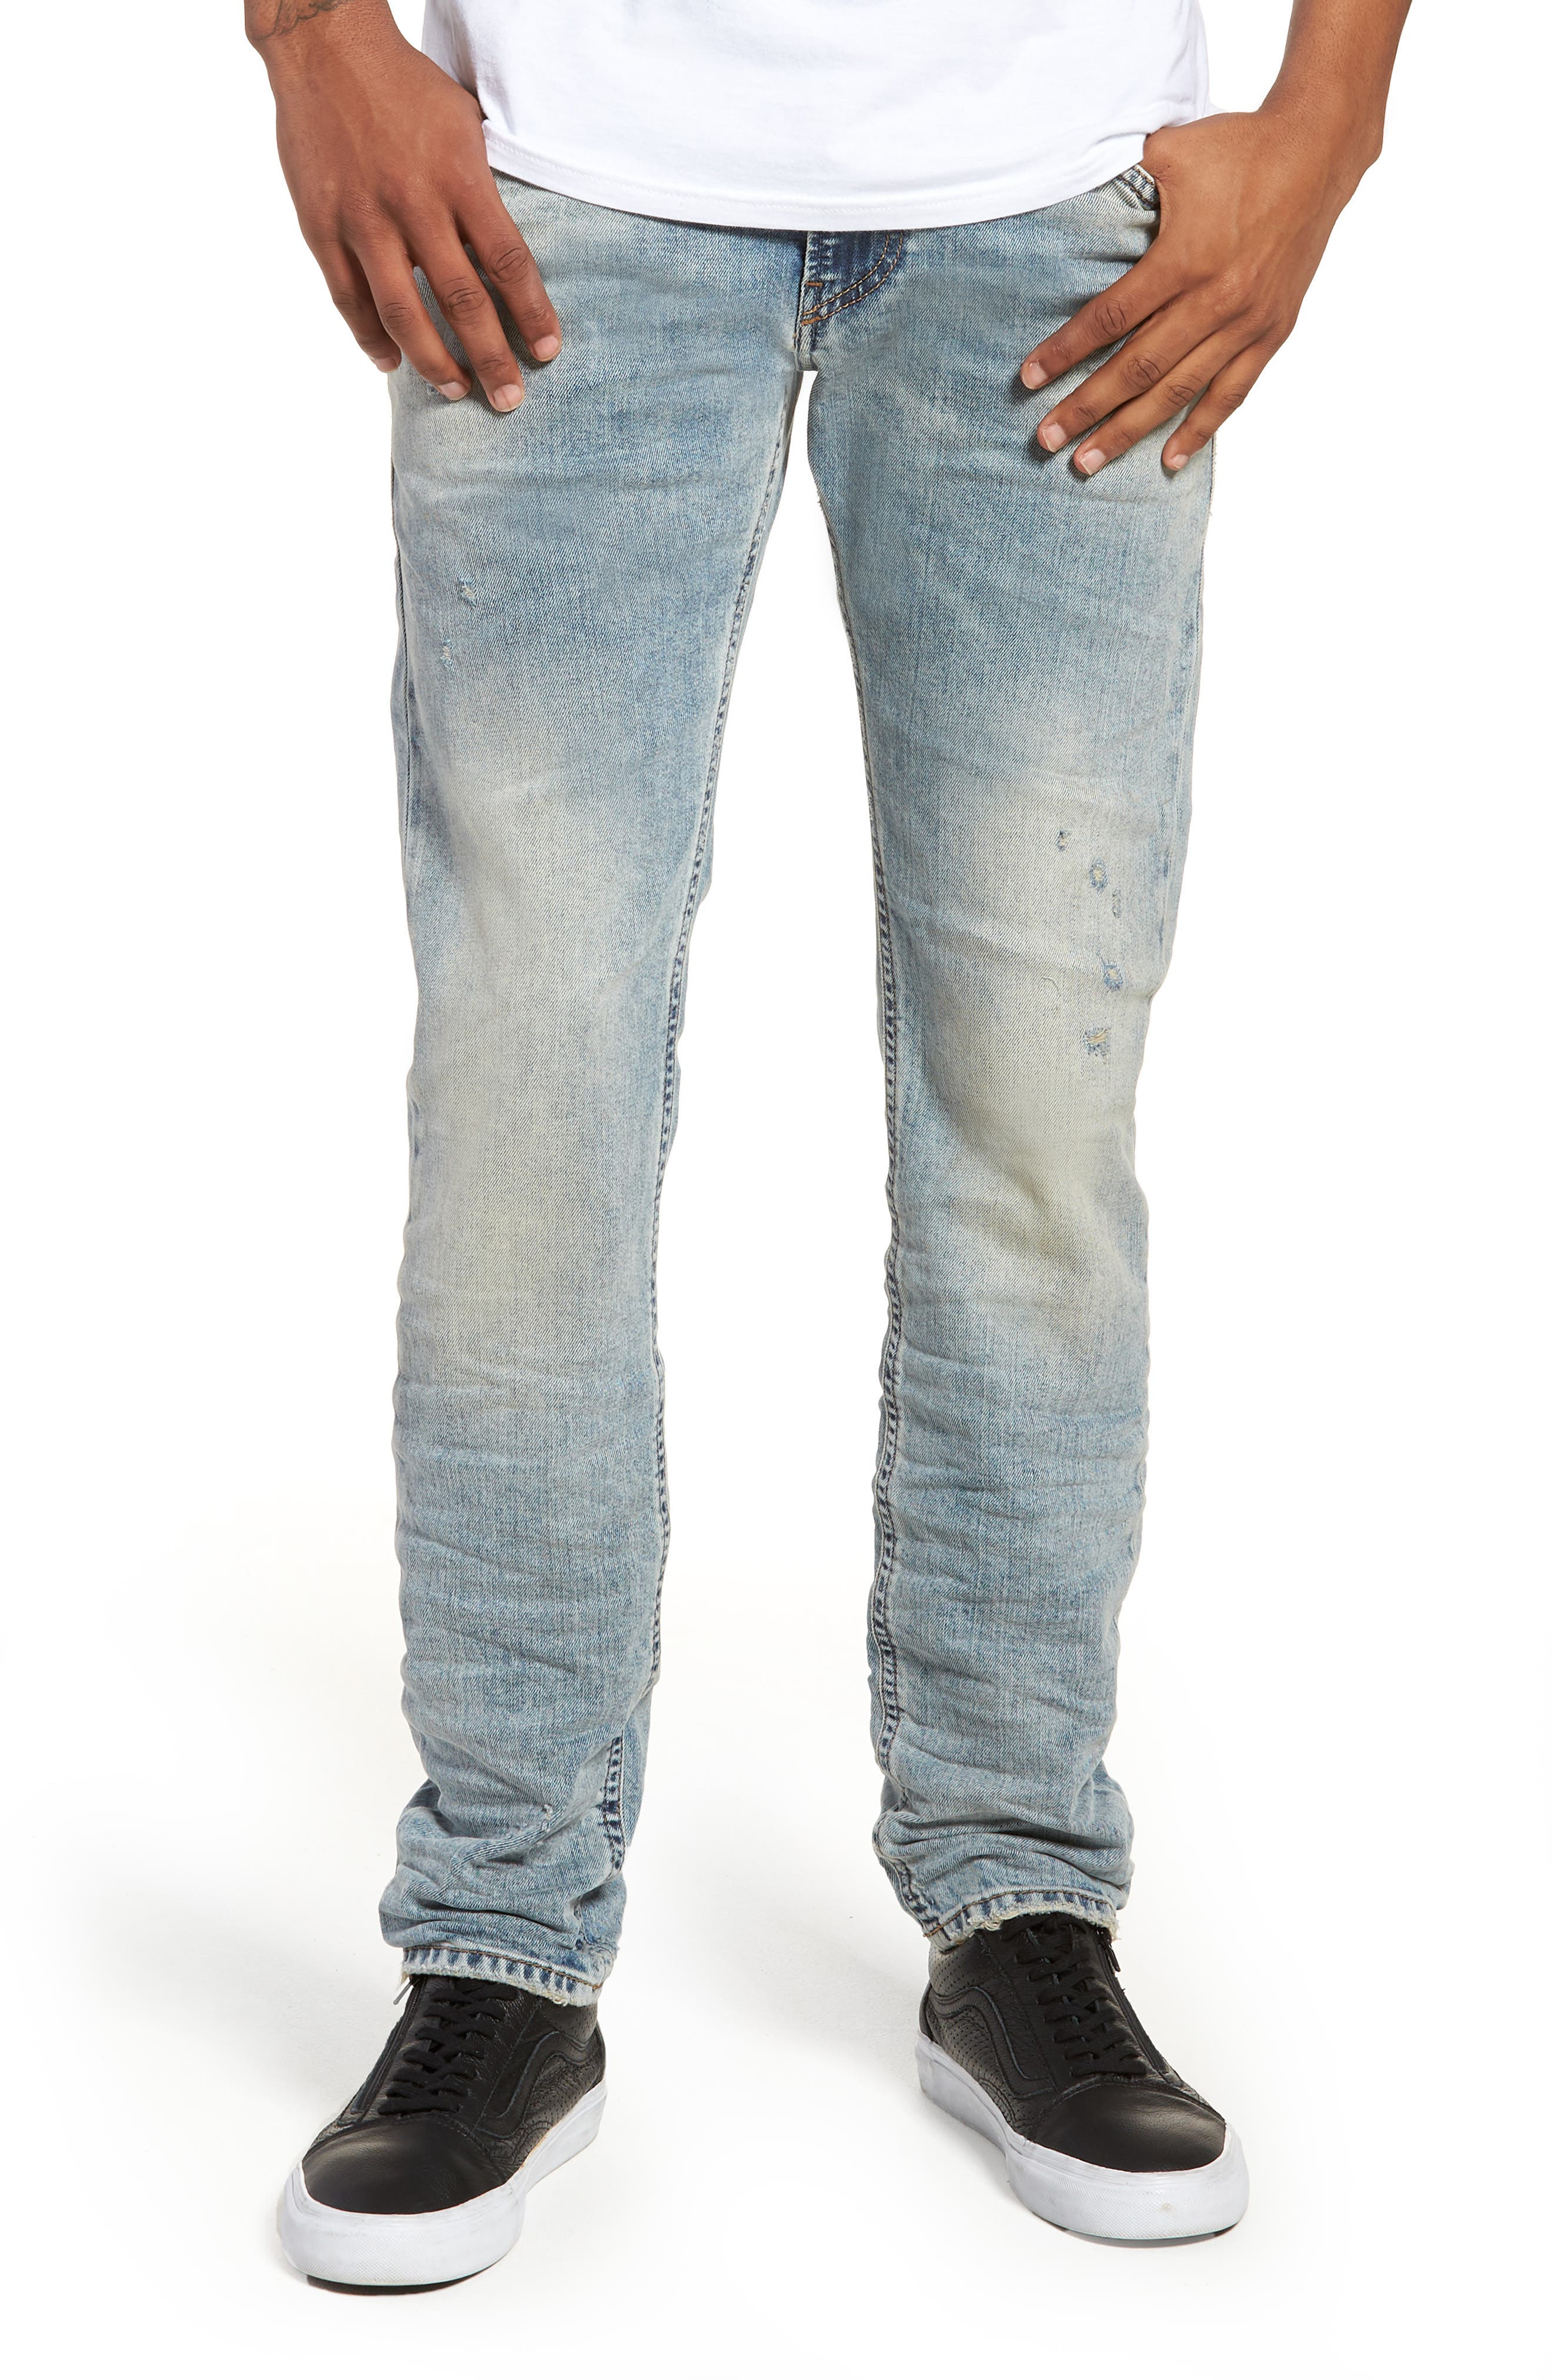 Thommer Skinny Fit Jeans,                         Main,                         color, 084Rf